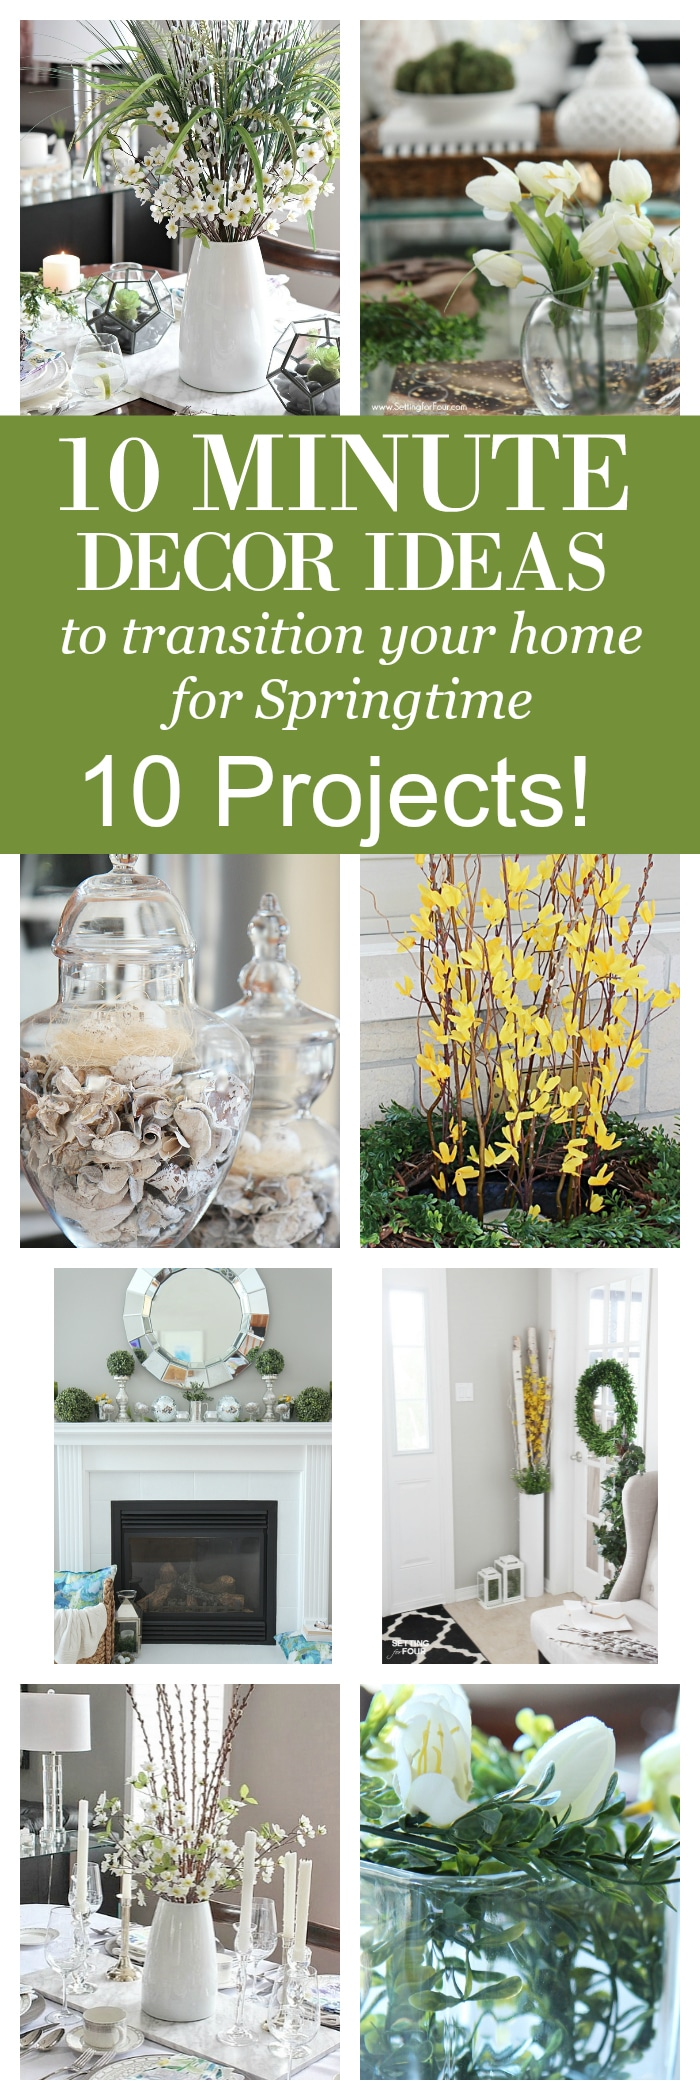 10 minute decor ideas to transition your home for Spring time! 10 projects in all!